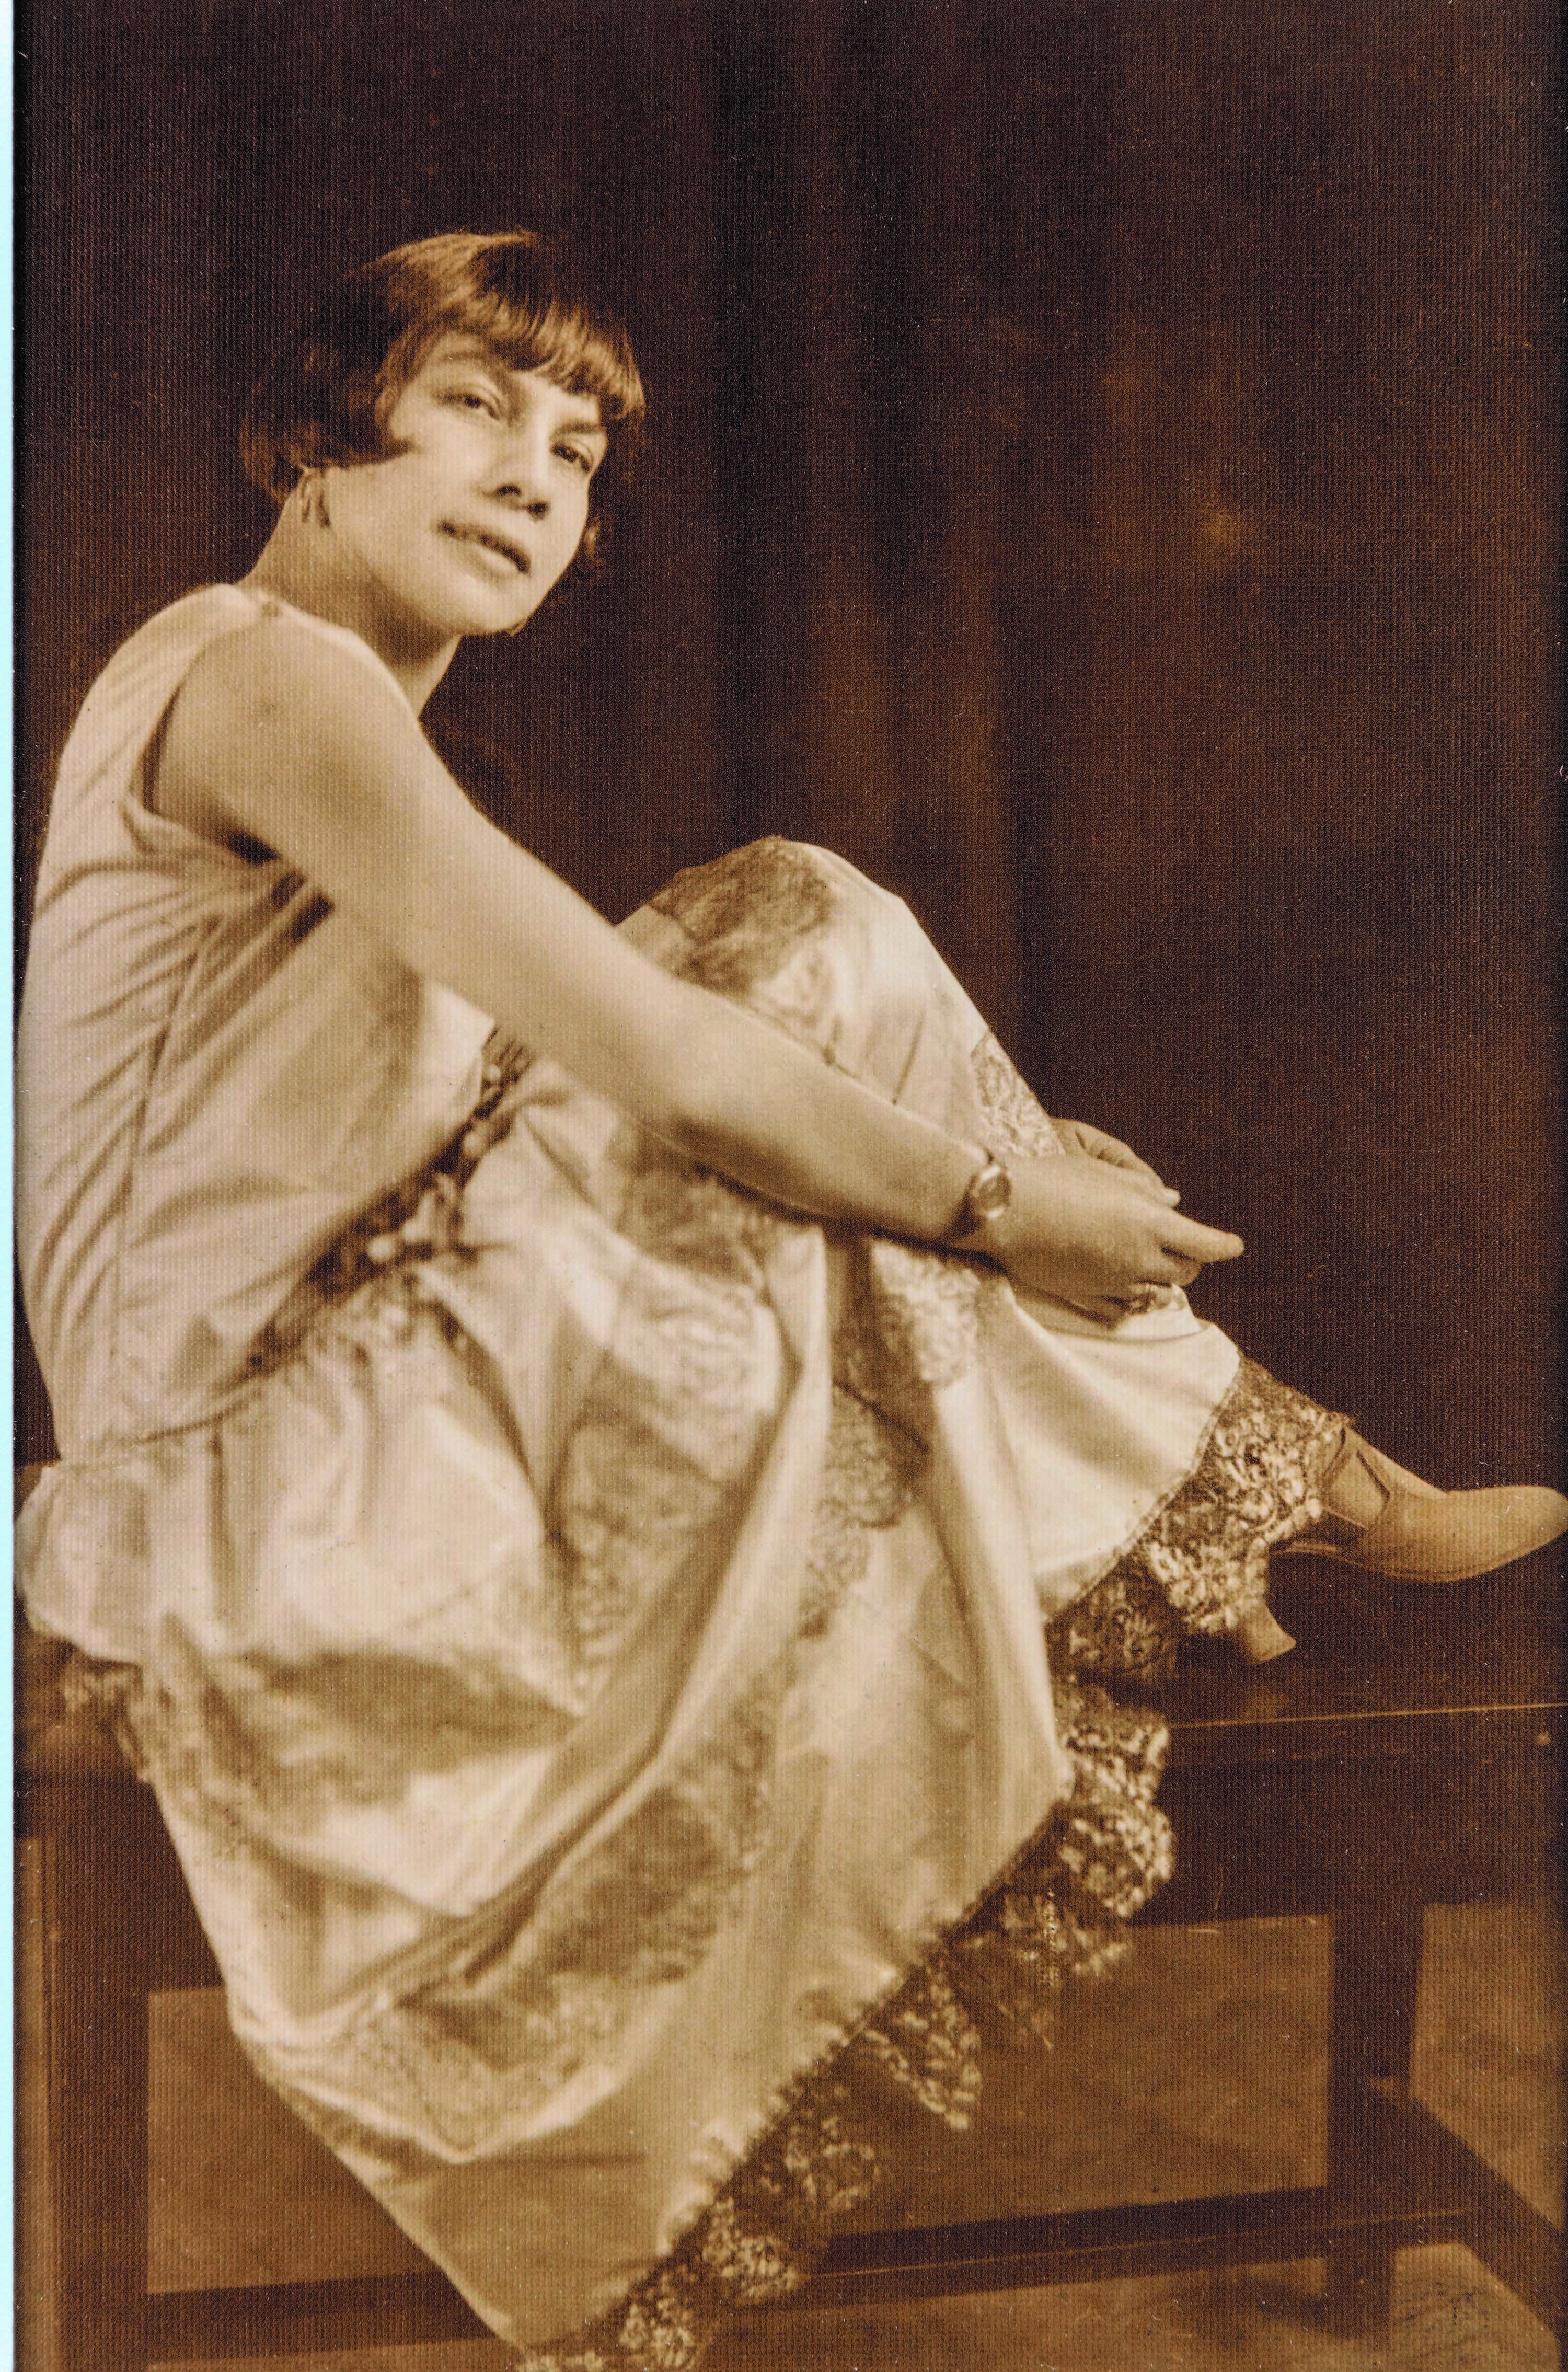 A woman in an evening dress sitting with her feet up on a bench, looking past the camera